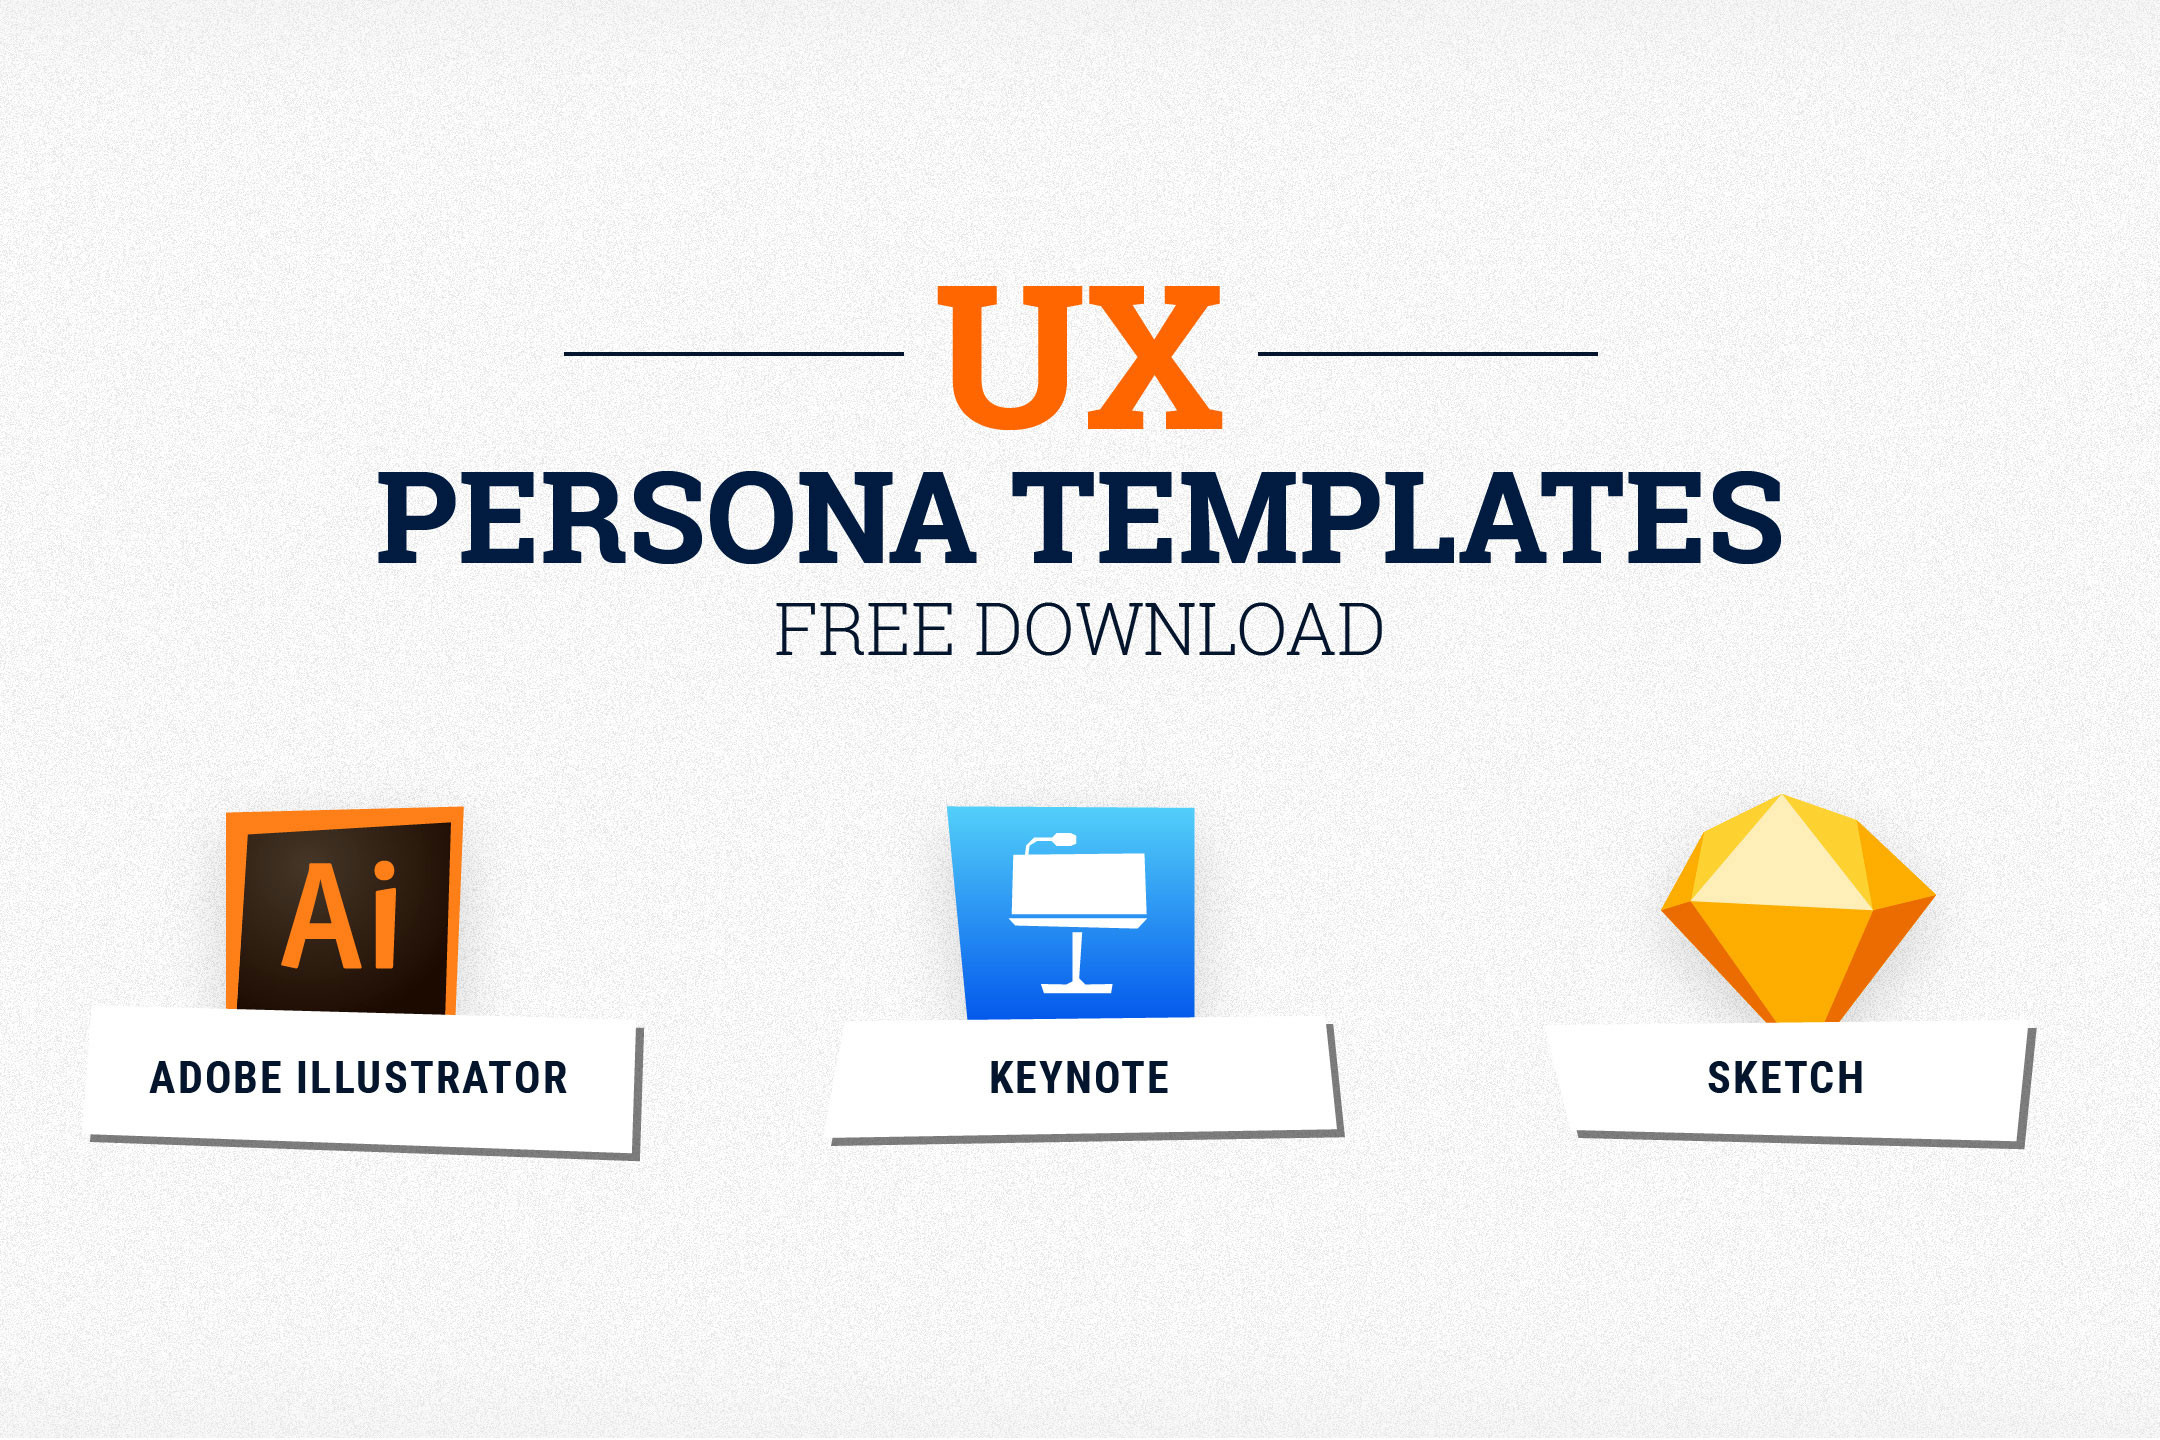 UX Persona Templates Free Download